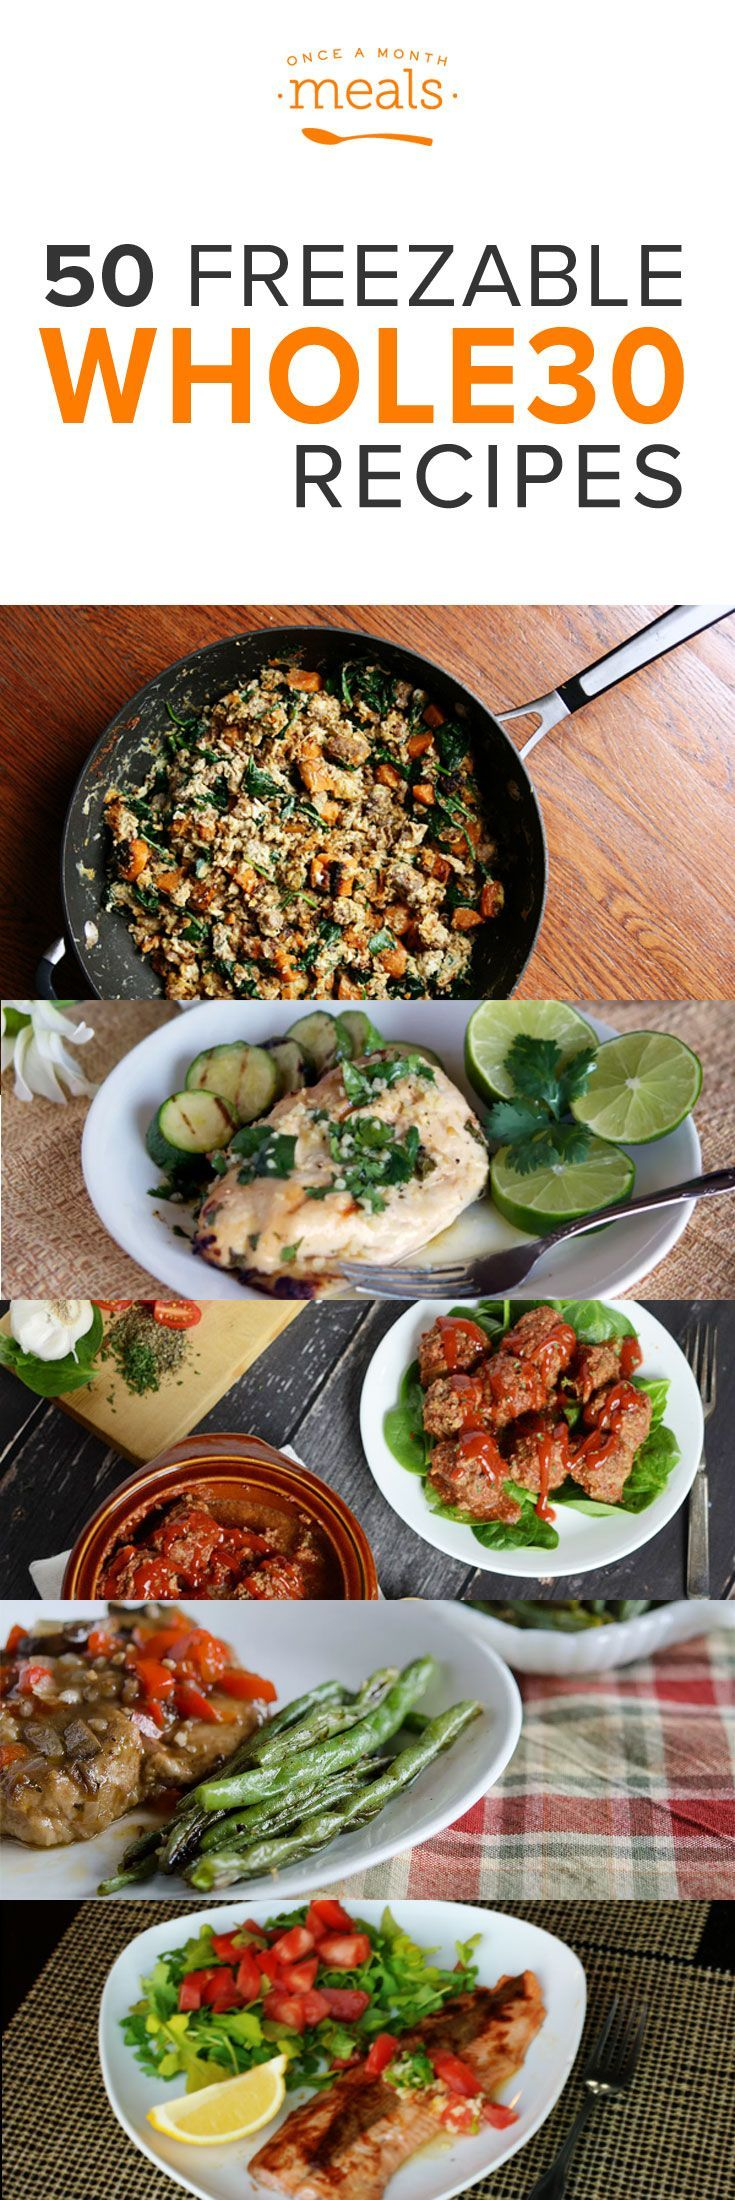 50 Freezable Whole30 Recipes - Time to start meal planning your Whole30 for the New Year! You can keep your resolutions by planning to succeed!